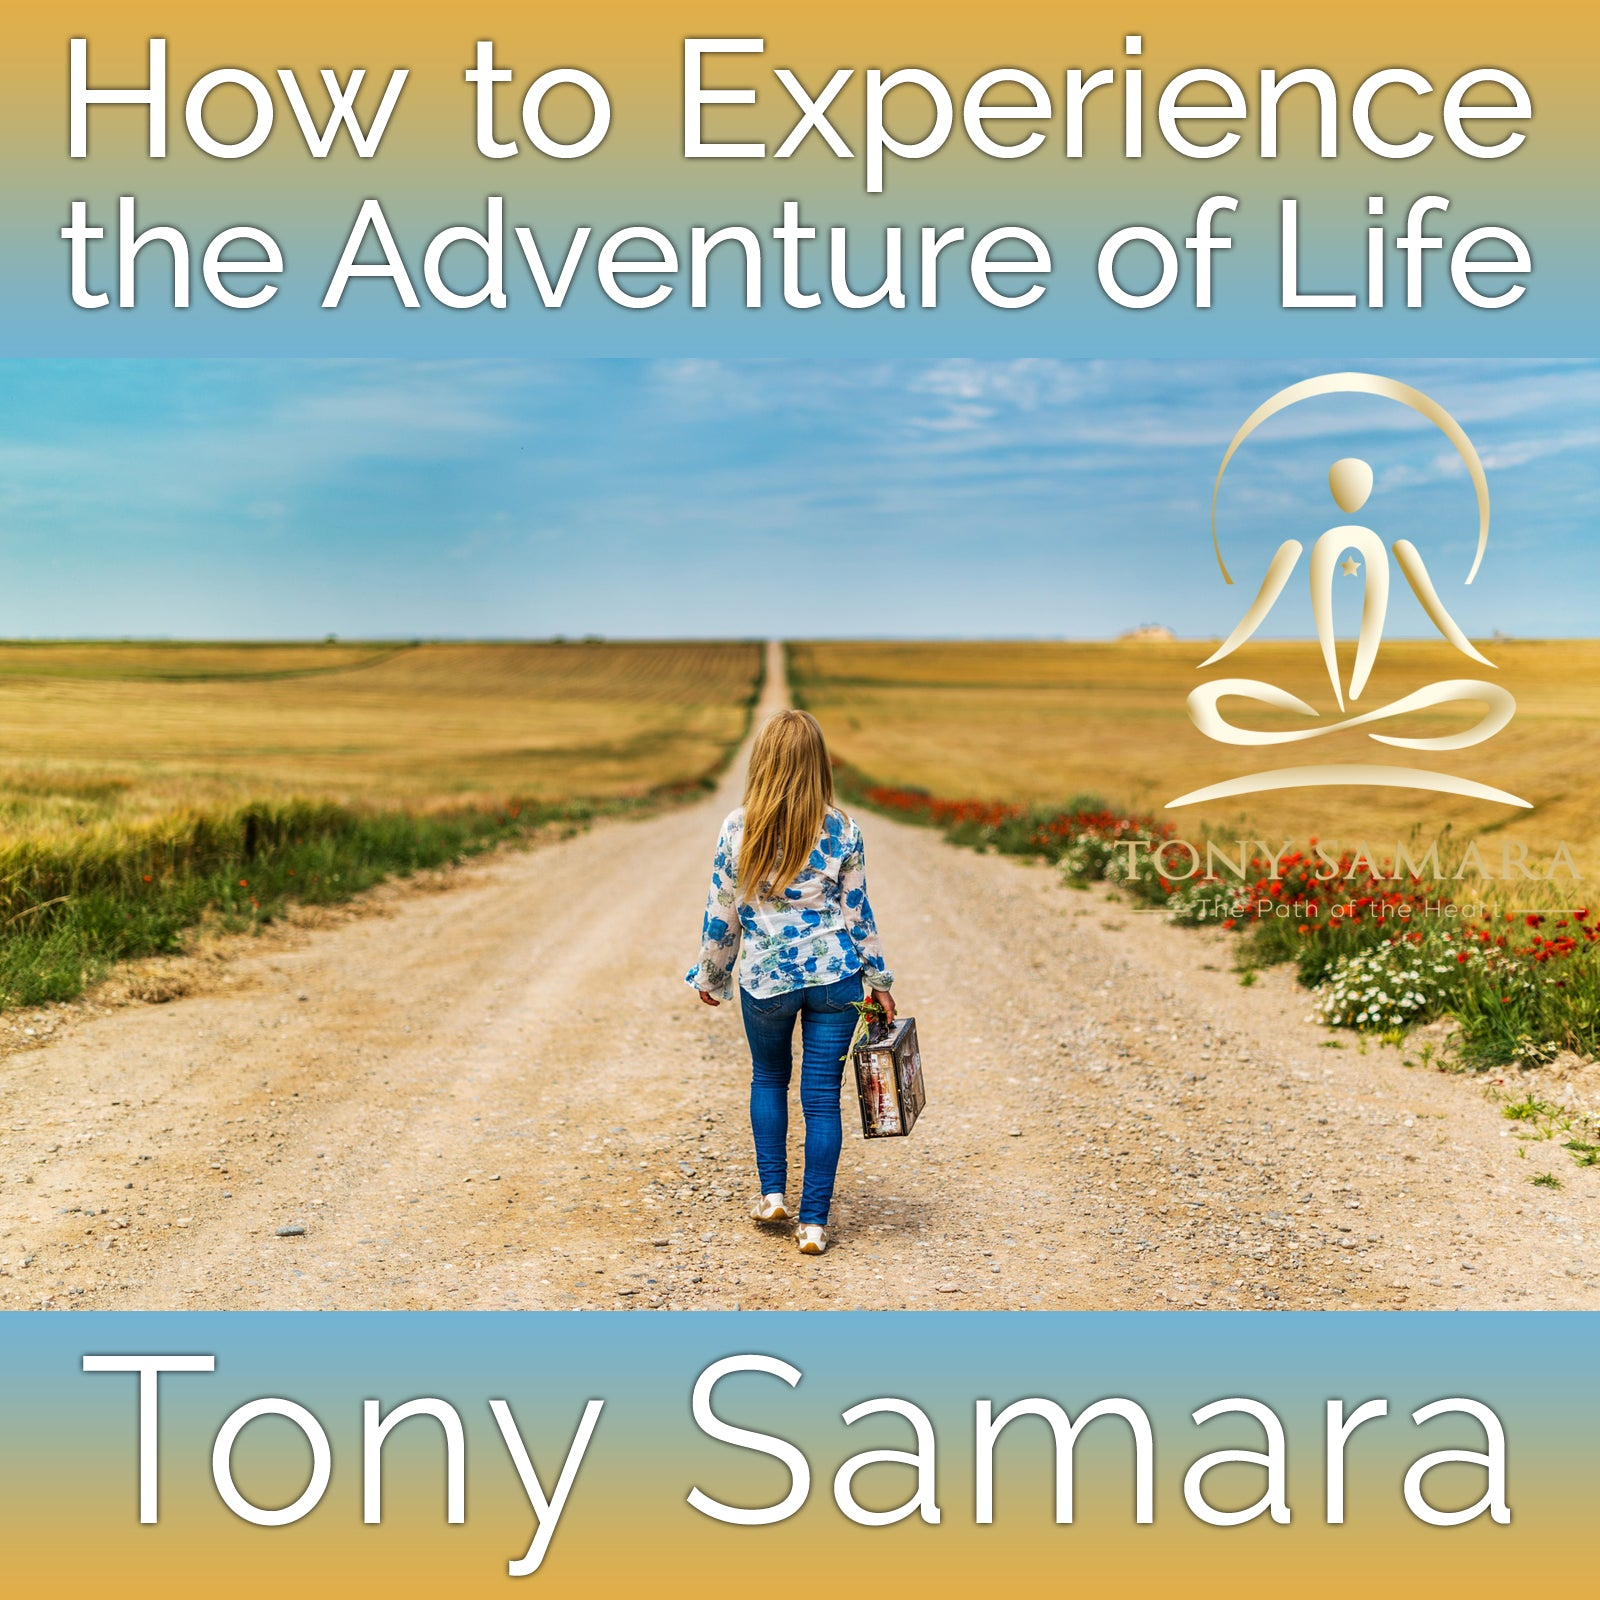 How to Experience the Adventure of Life (MP3 Audio Download) - Tony Samara Meditation